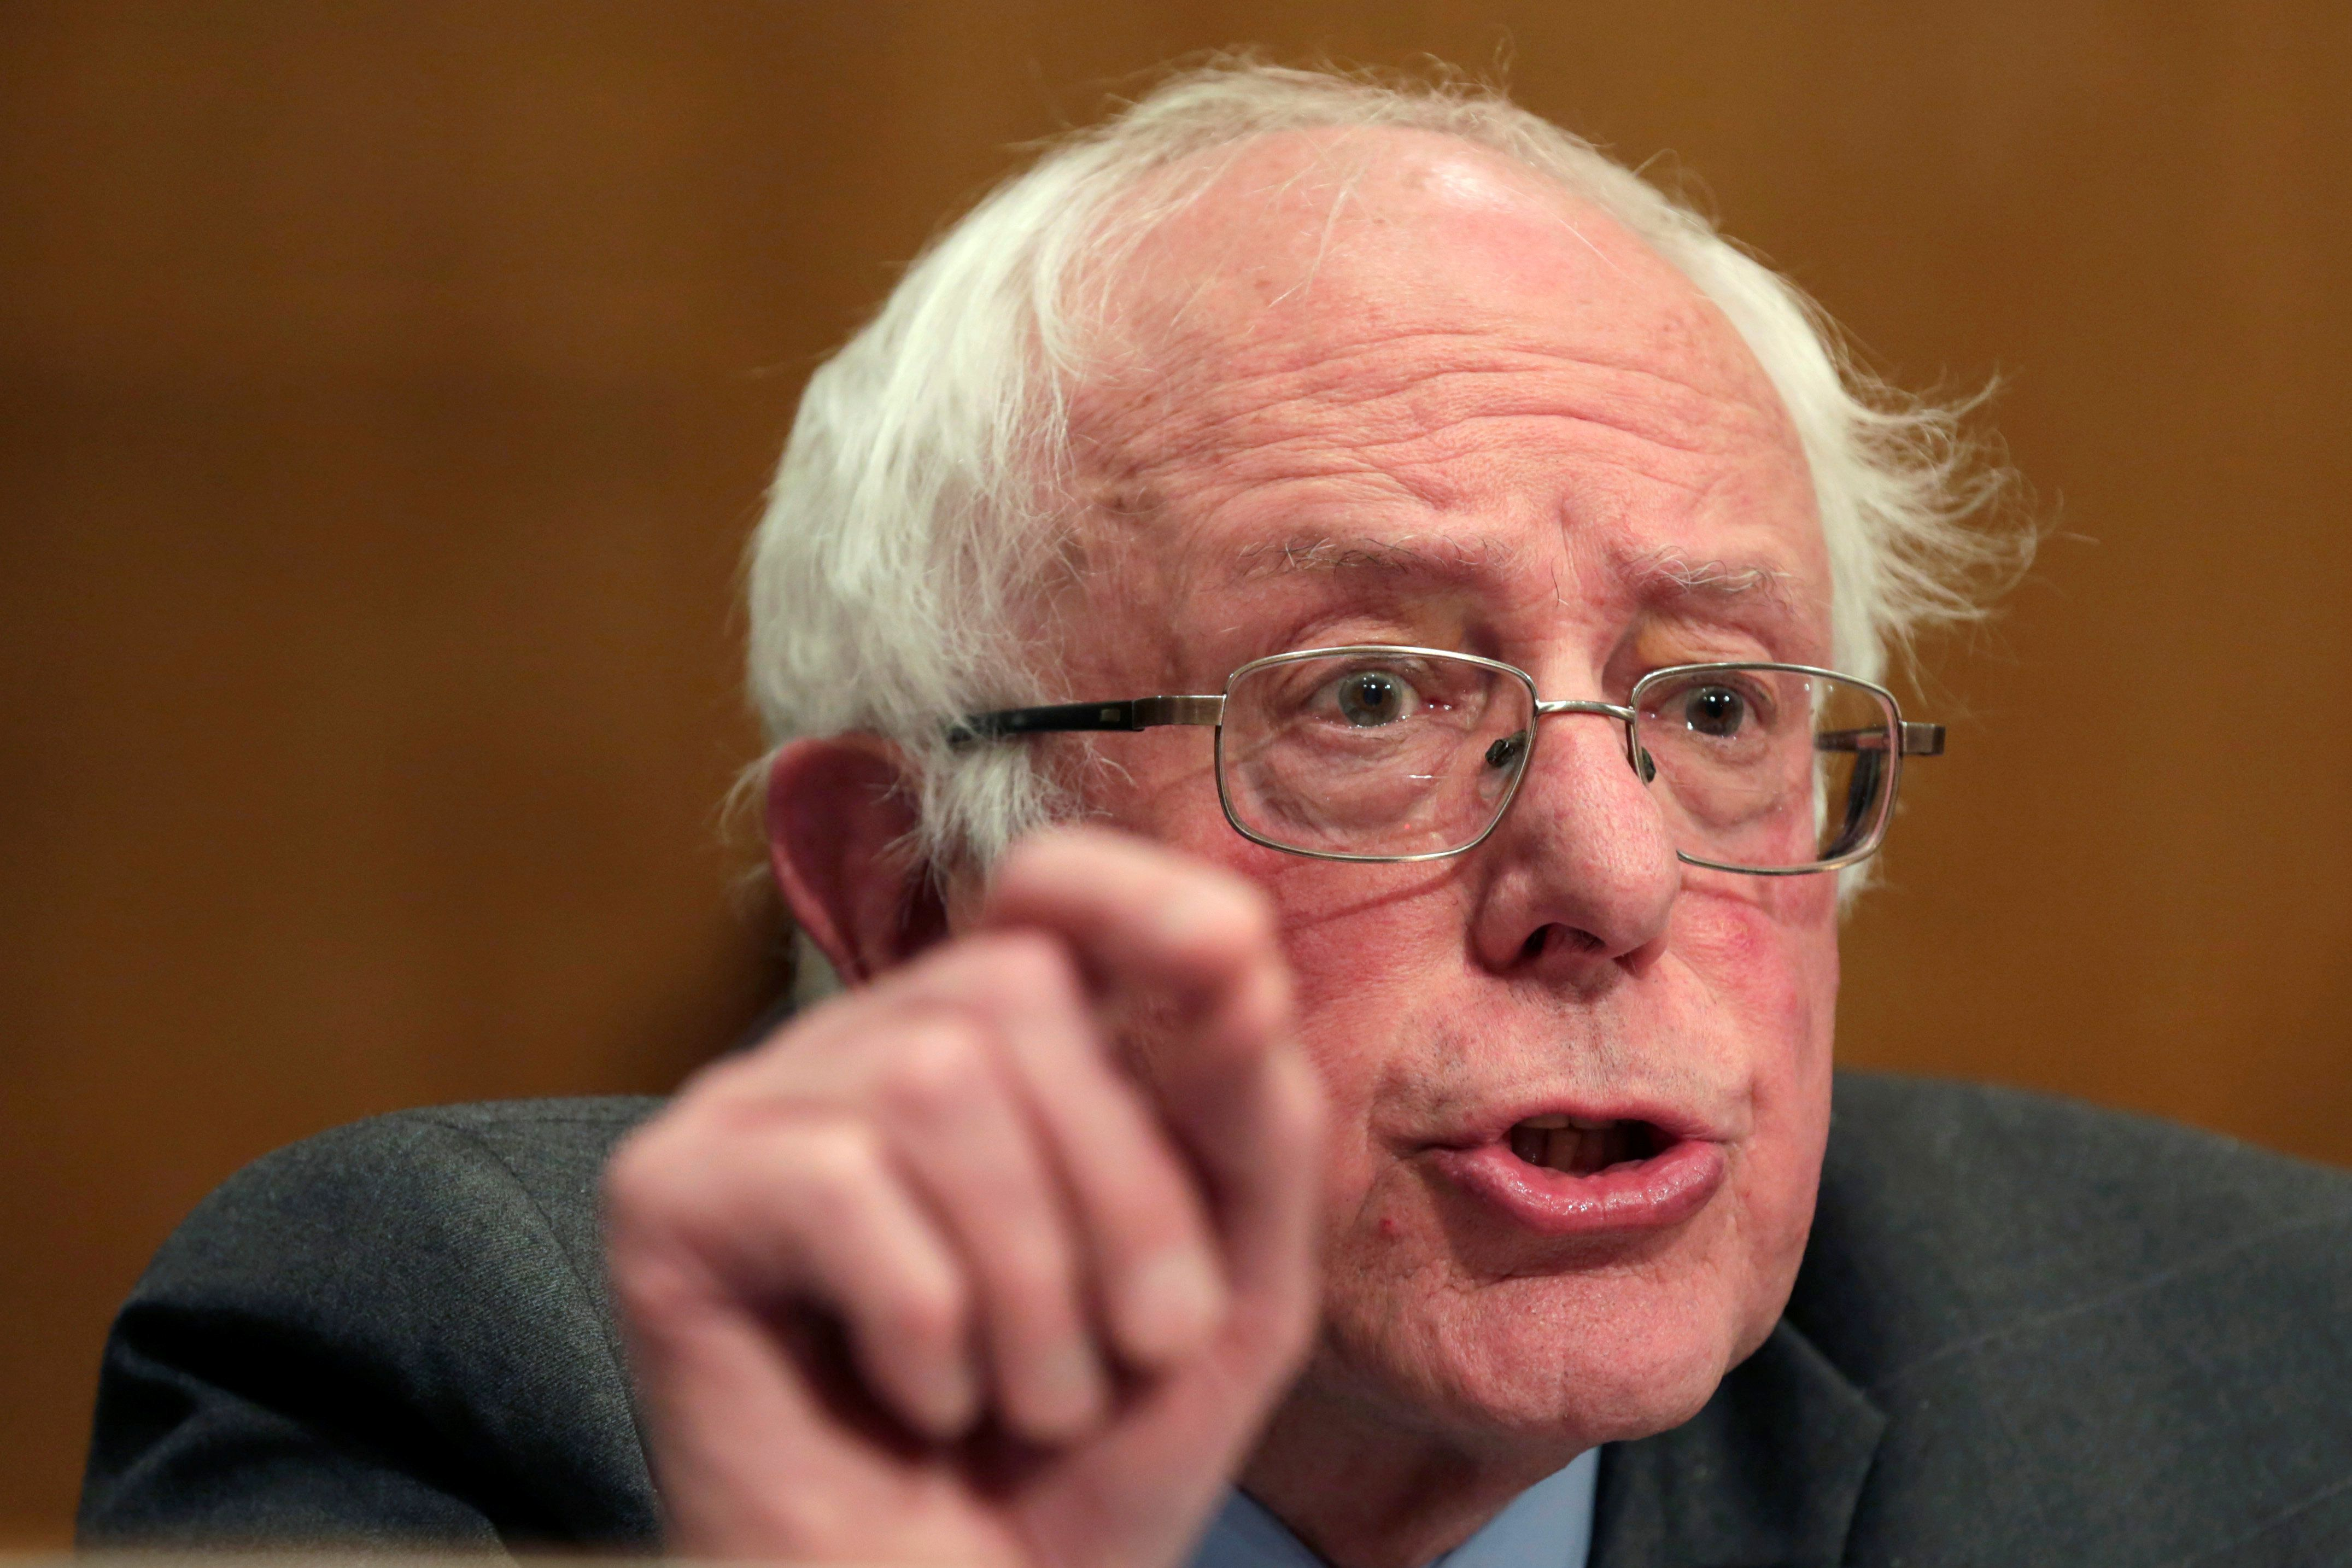 Sen. Bernie Sanders (I-Vt.) questioned statements about Muslims made by Russell Vought, President Donald Trump's top pick for